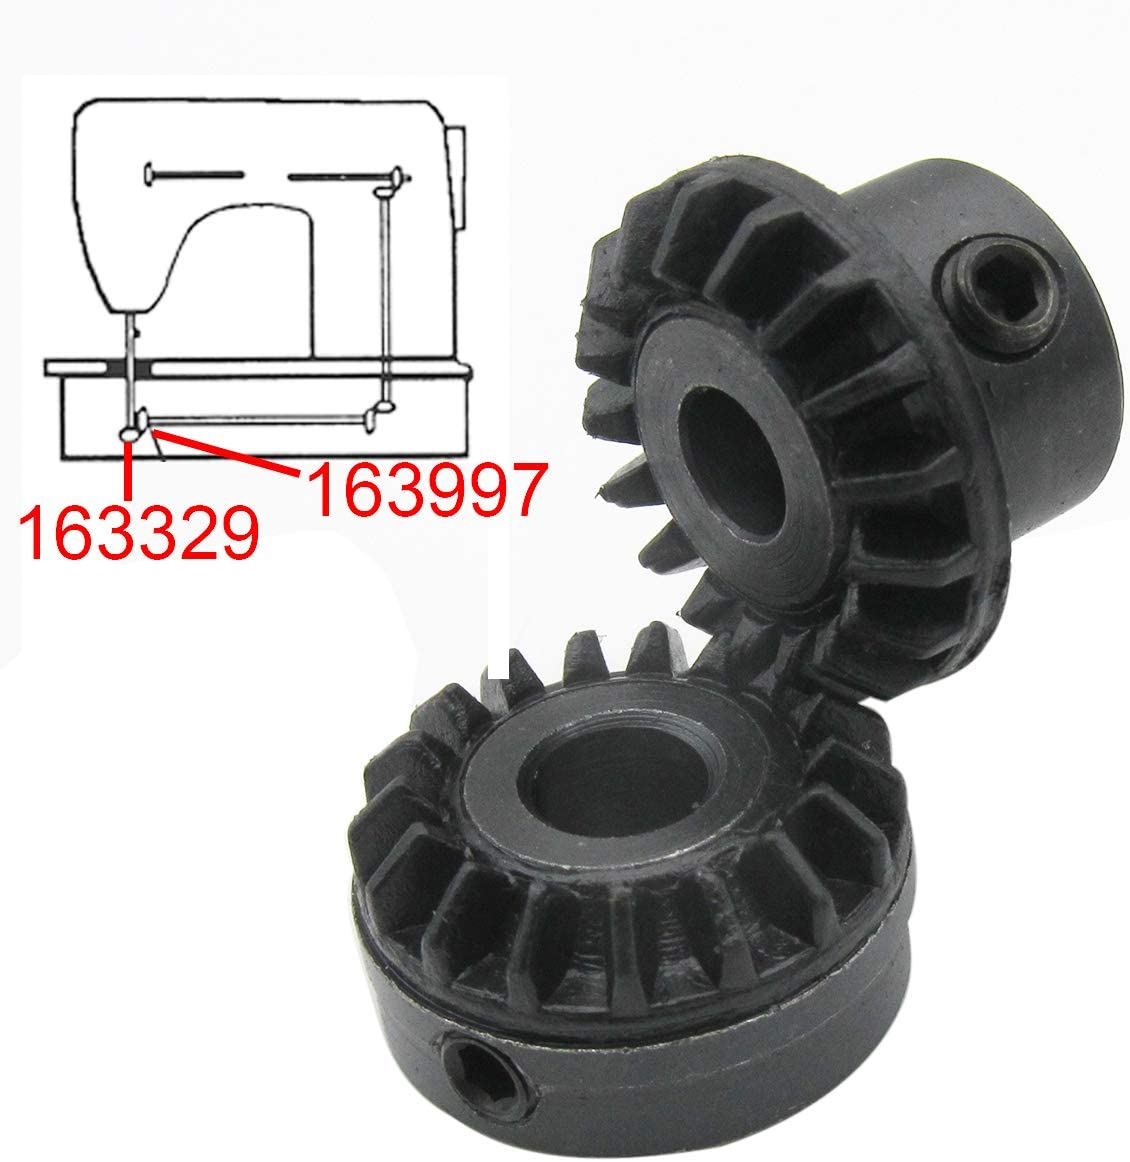 CKPSMS brand 1SET #163997+163329 Replacement Hook gear FIT FOR SINGER 625,626,628,629,630,645,648 /&700 series